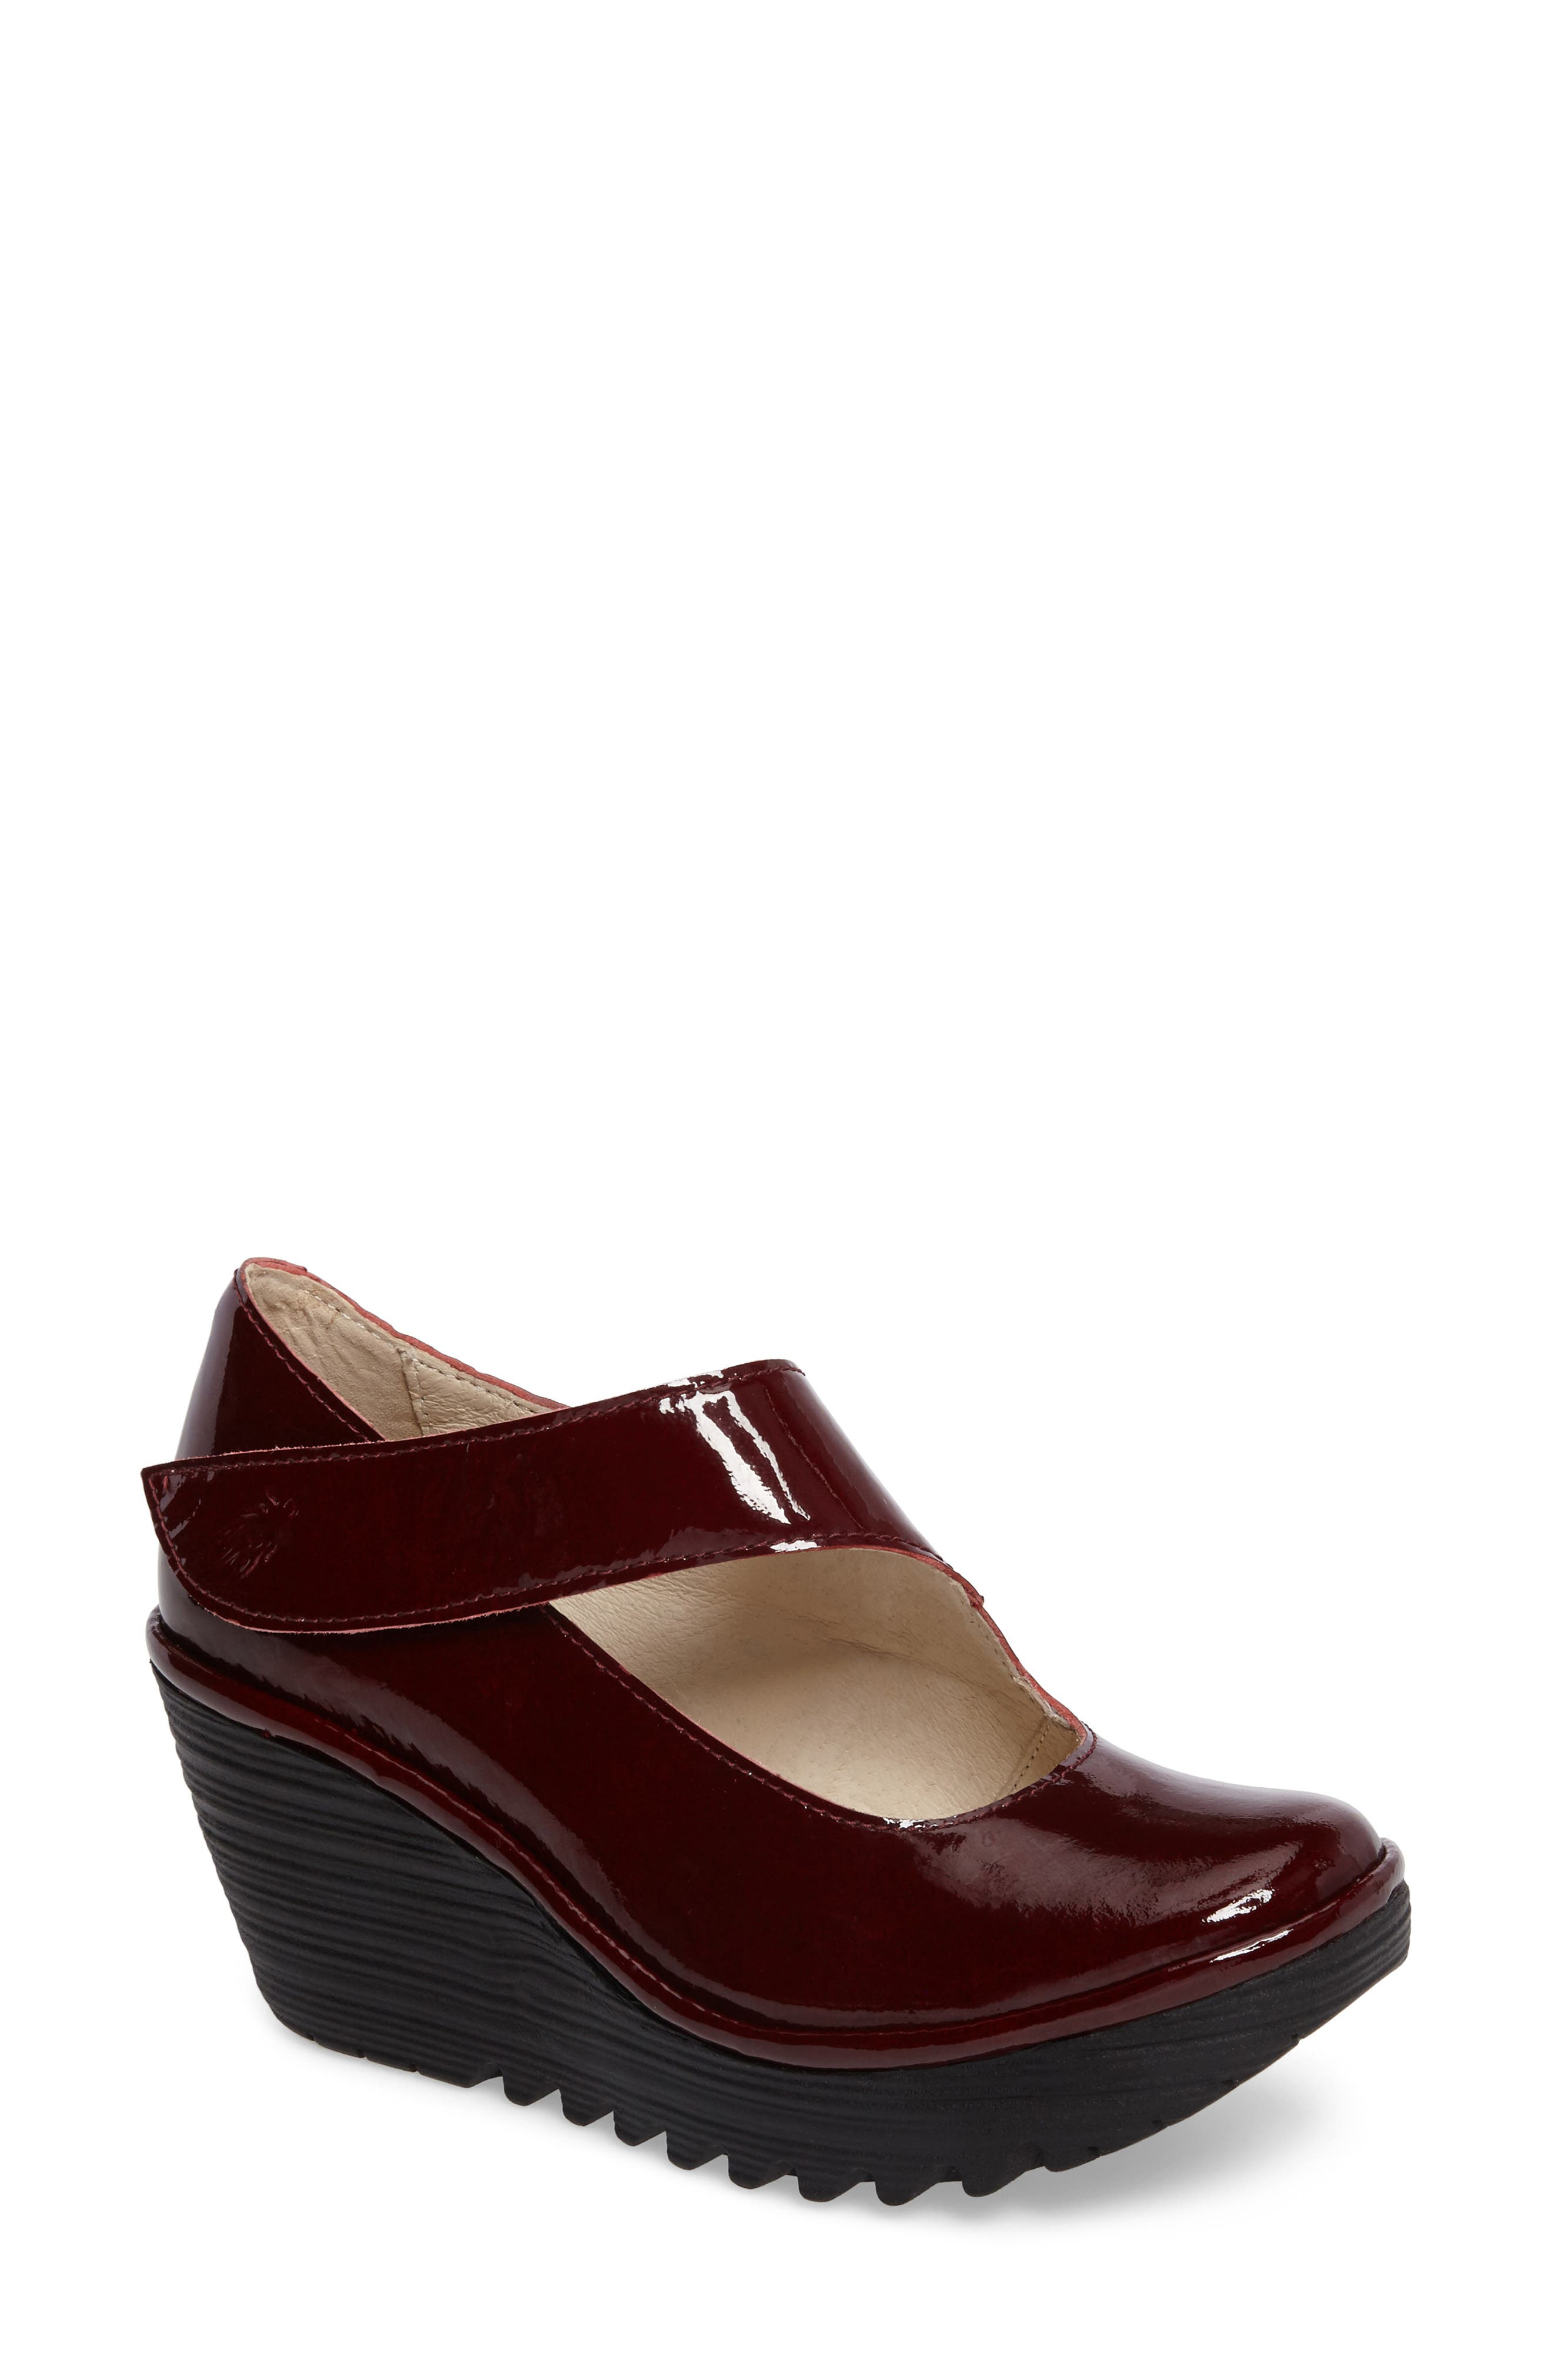 'Yasi' Wedge Pump,                         Main,                         color, Cordoba Red Leather